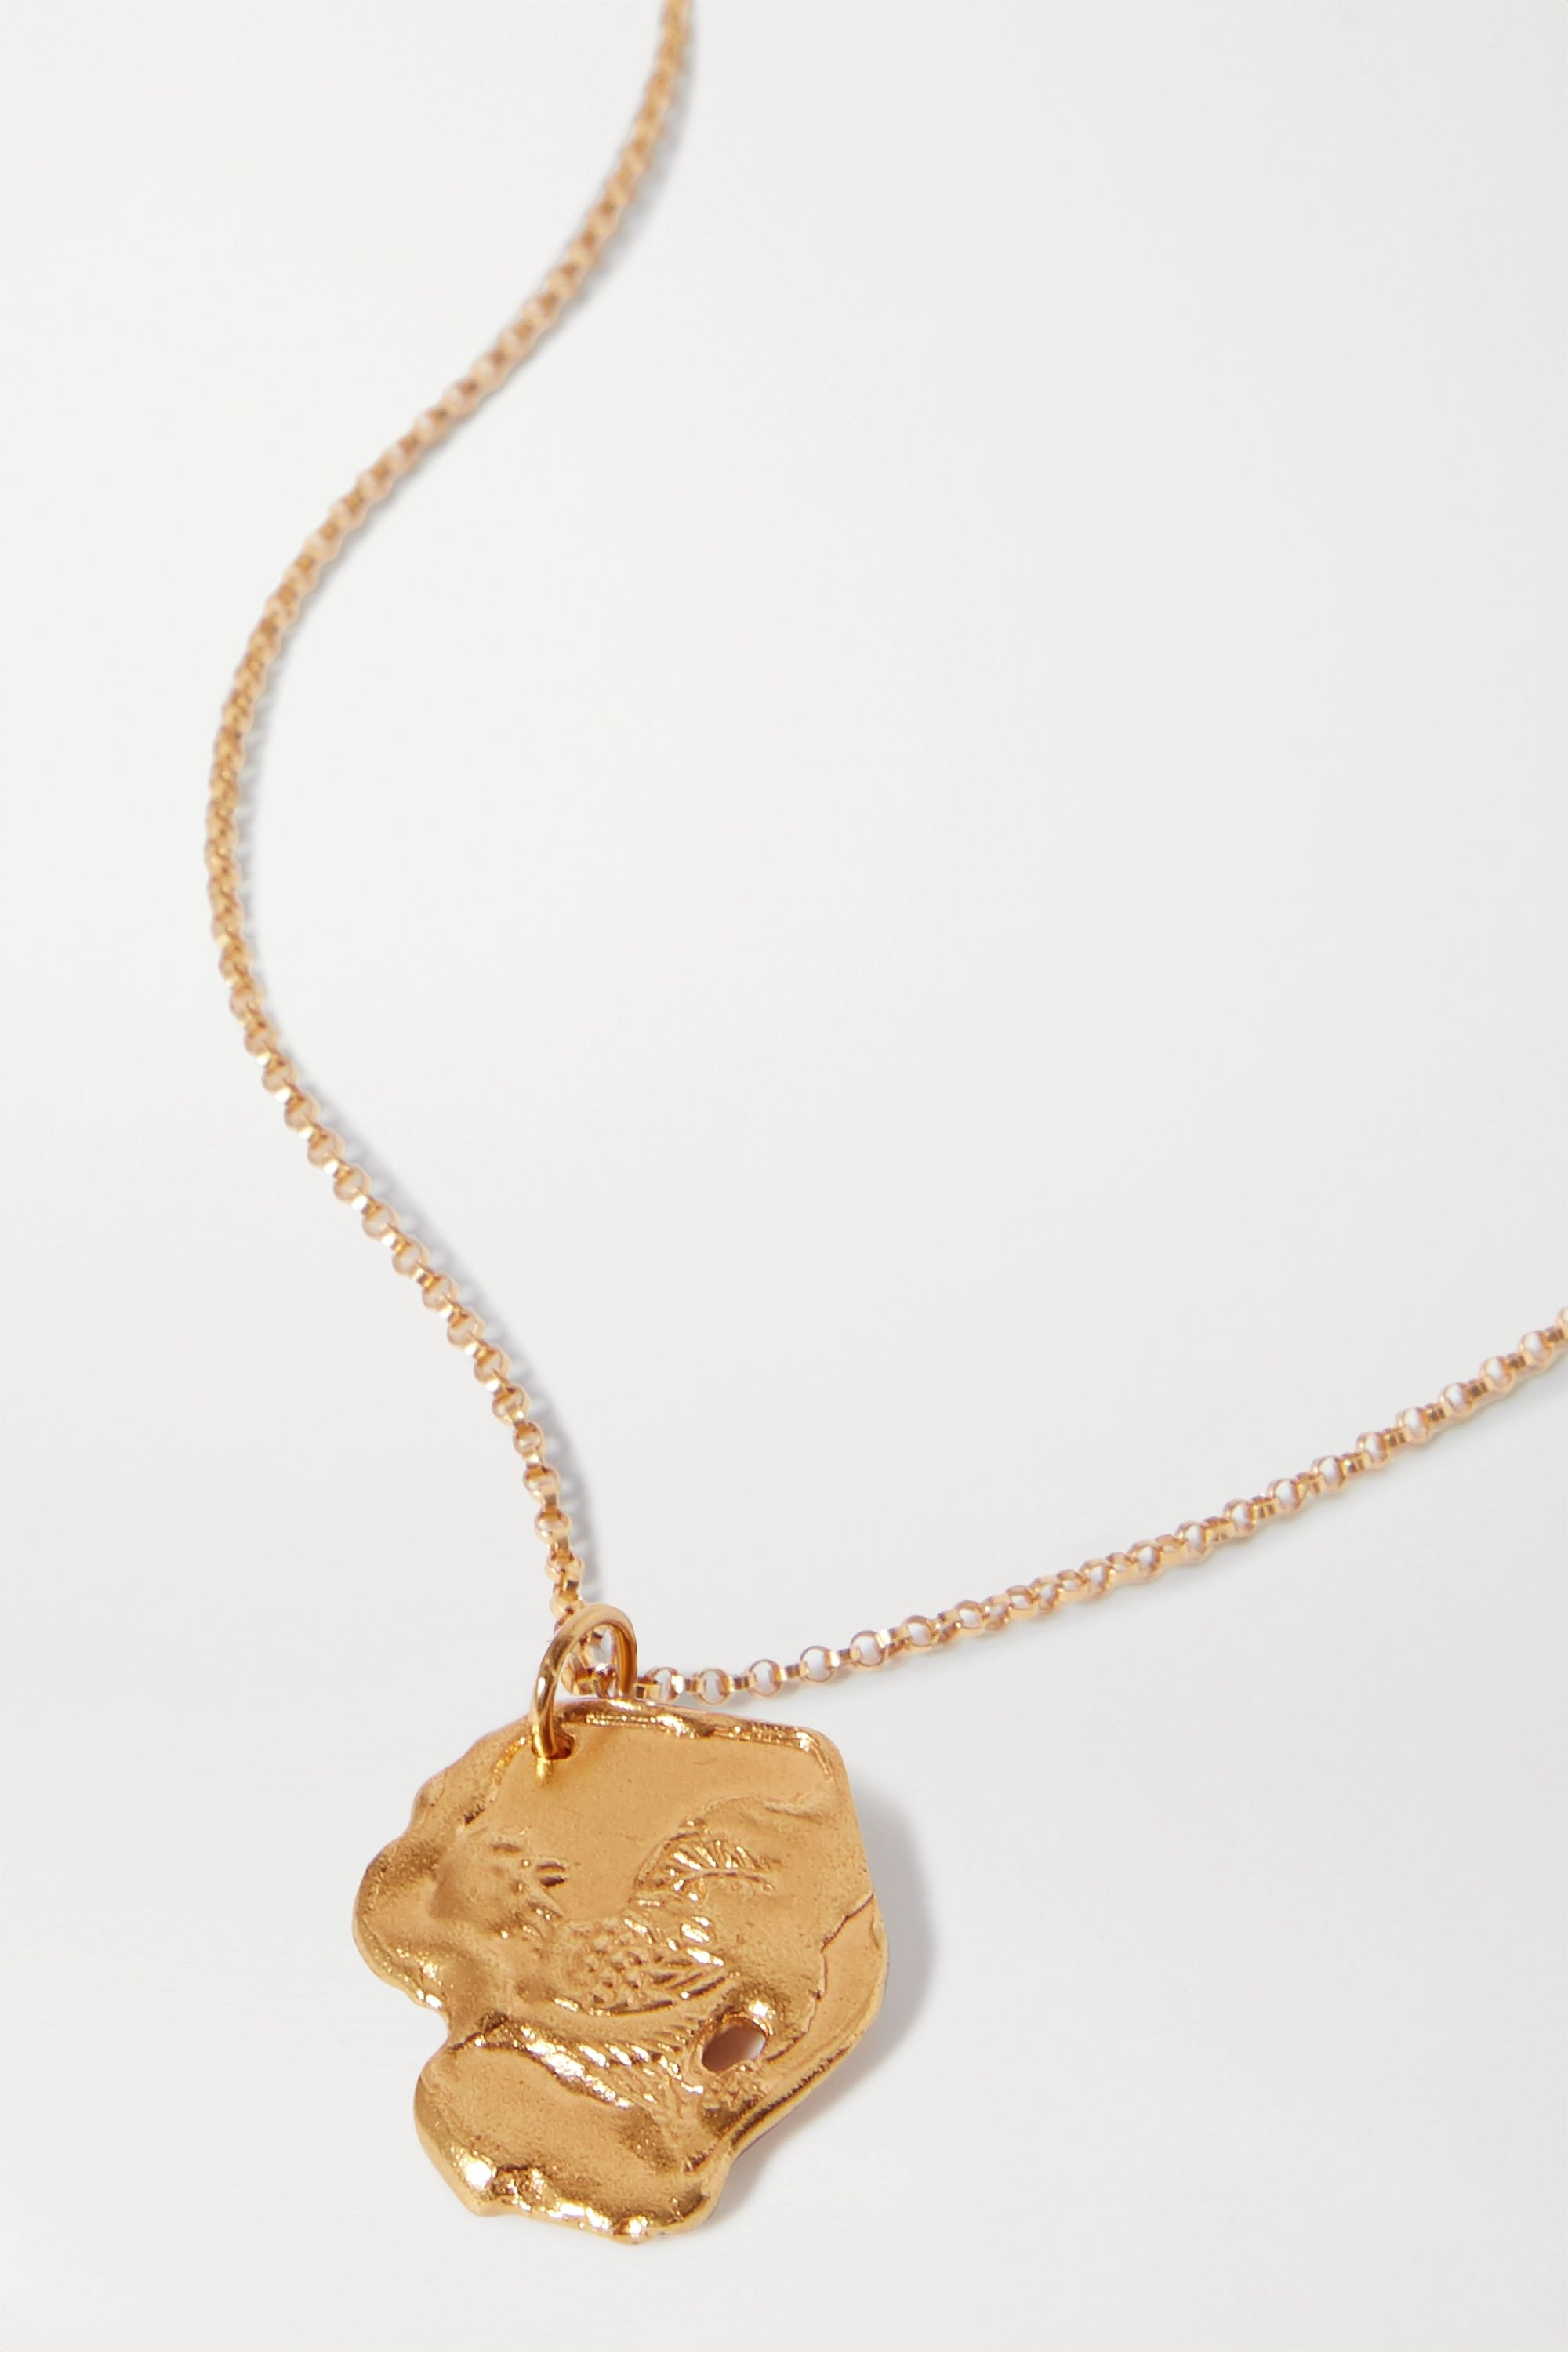 Alighieri Year of the Rooster gold-plated necklace